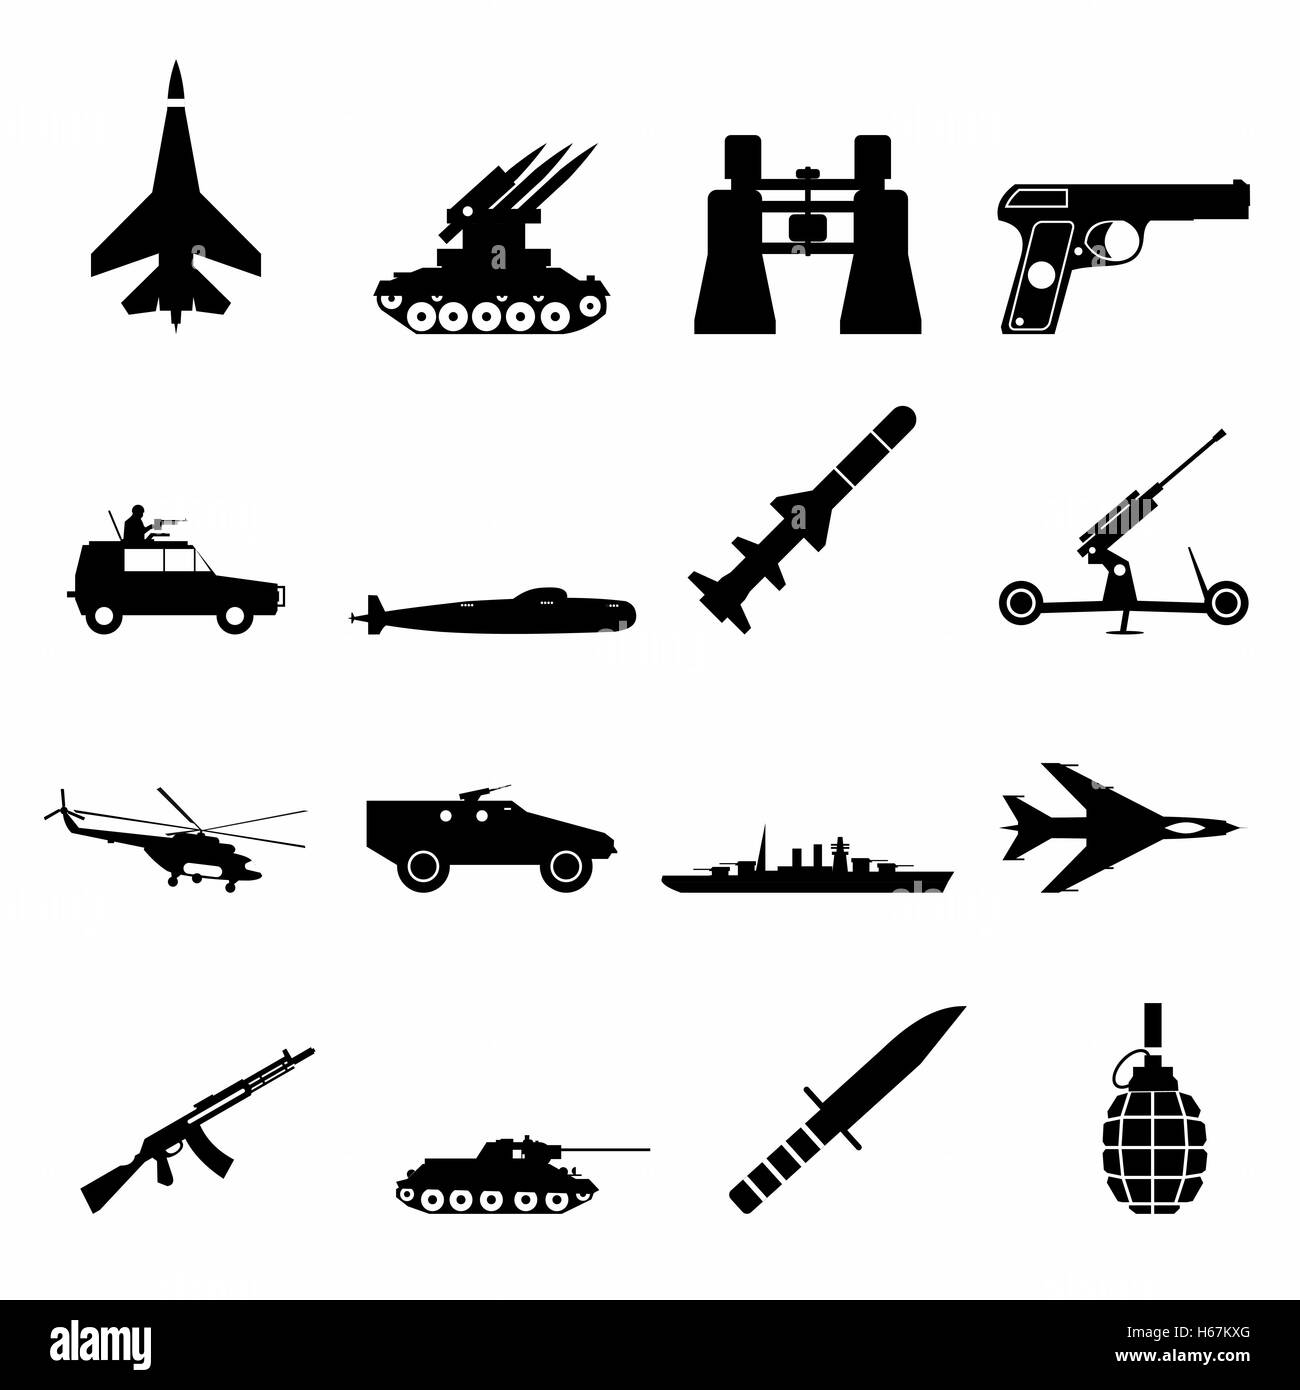 16 weapon simple icons set - Stock Image